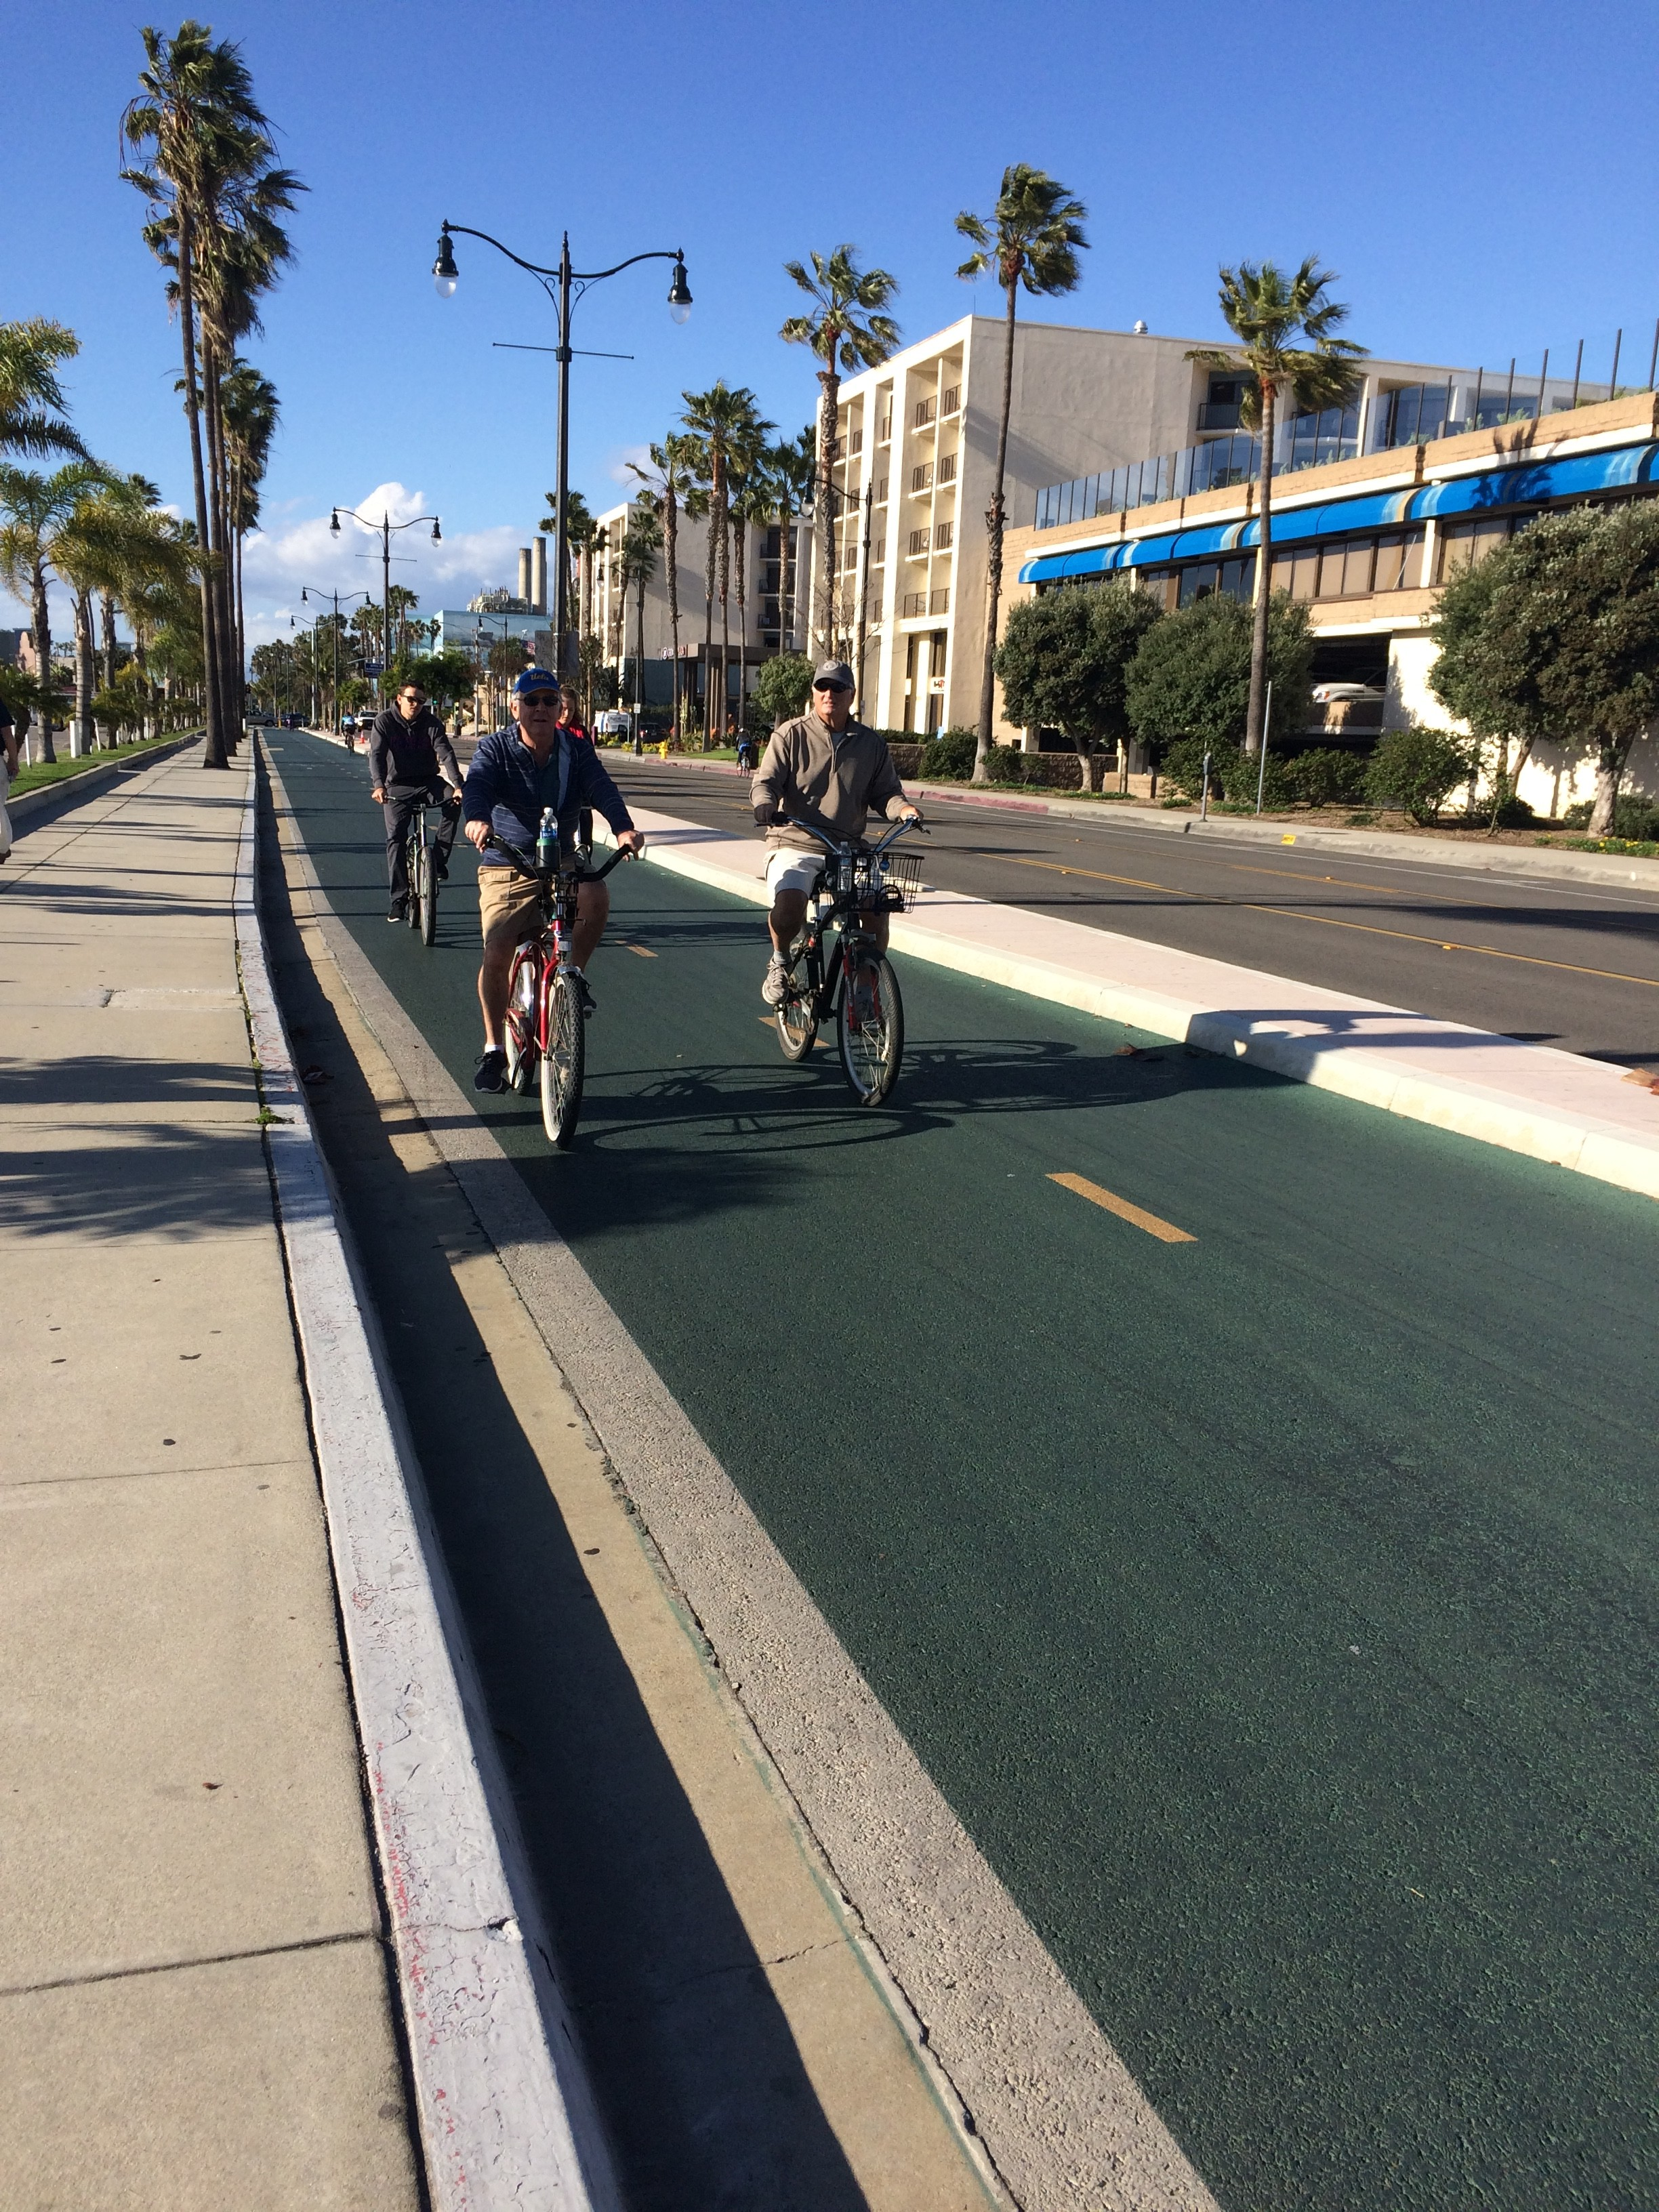 Redondo Beach loves bikers — and skaters — as evidenced by this bikeway, built with a barrier between regular traffic. The lanes even have their own traffic signals. (Photo by E'Louise Ondash)